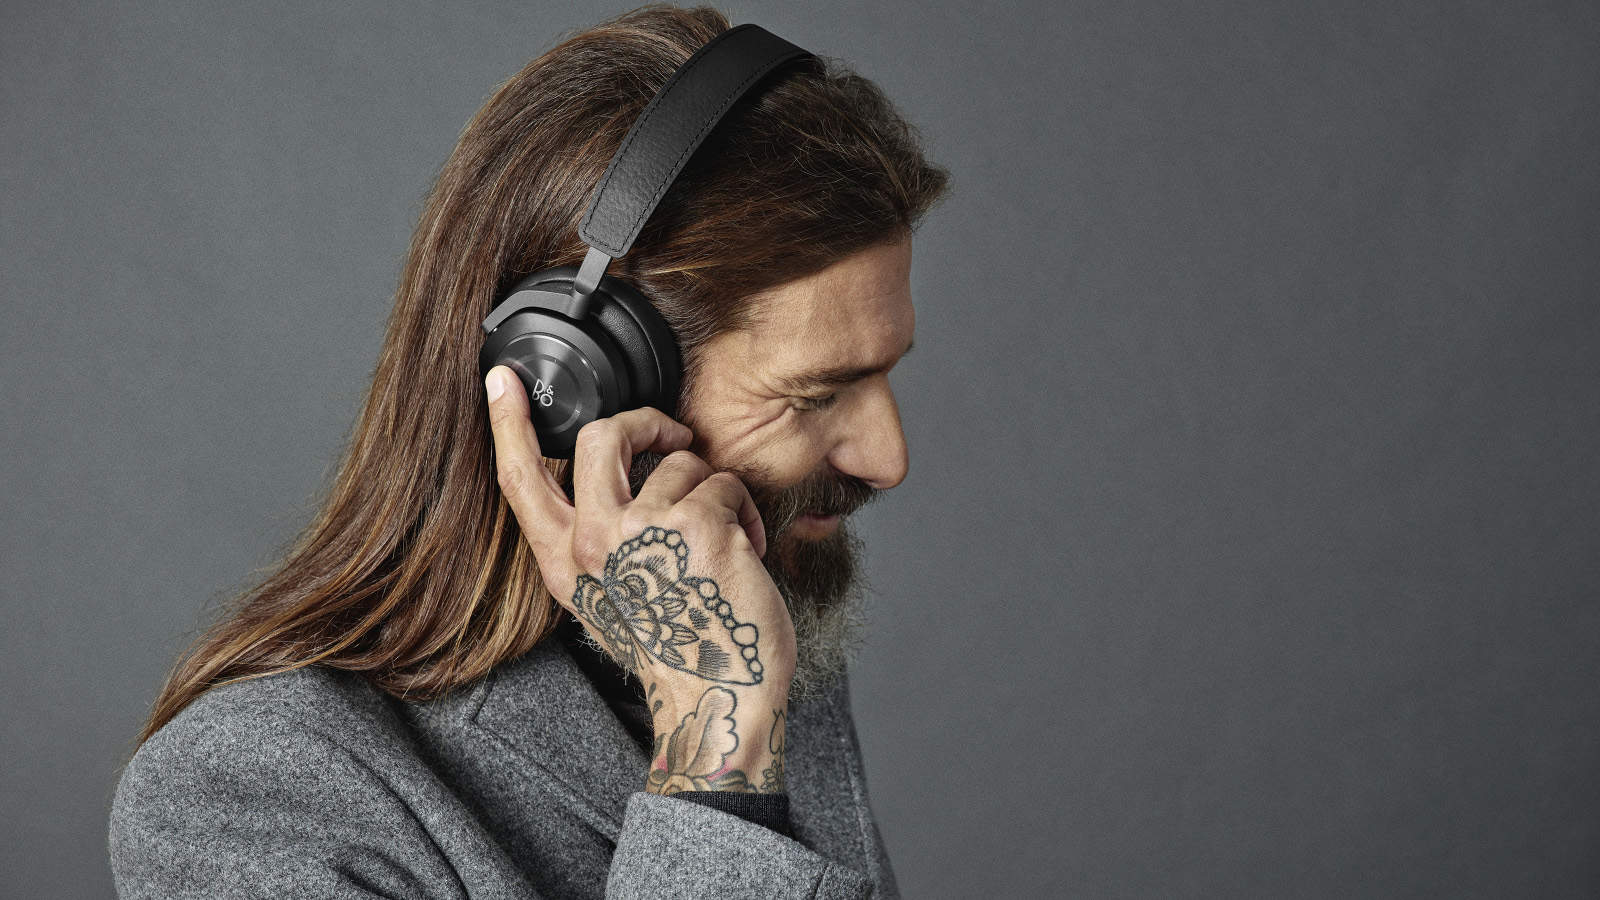 bang-olufsen-beoplay-h9i-wireless-headphones